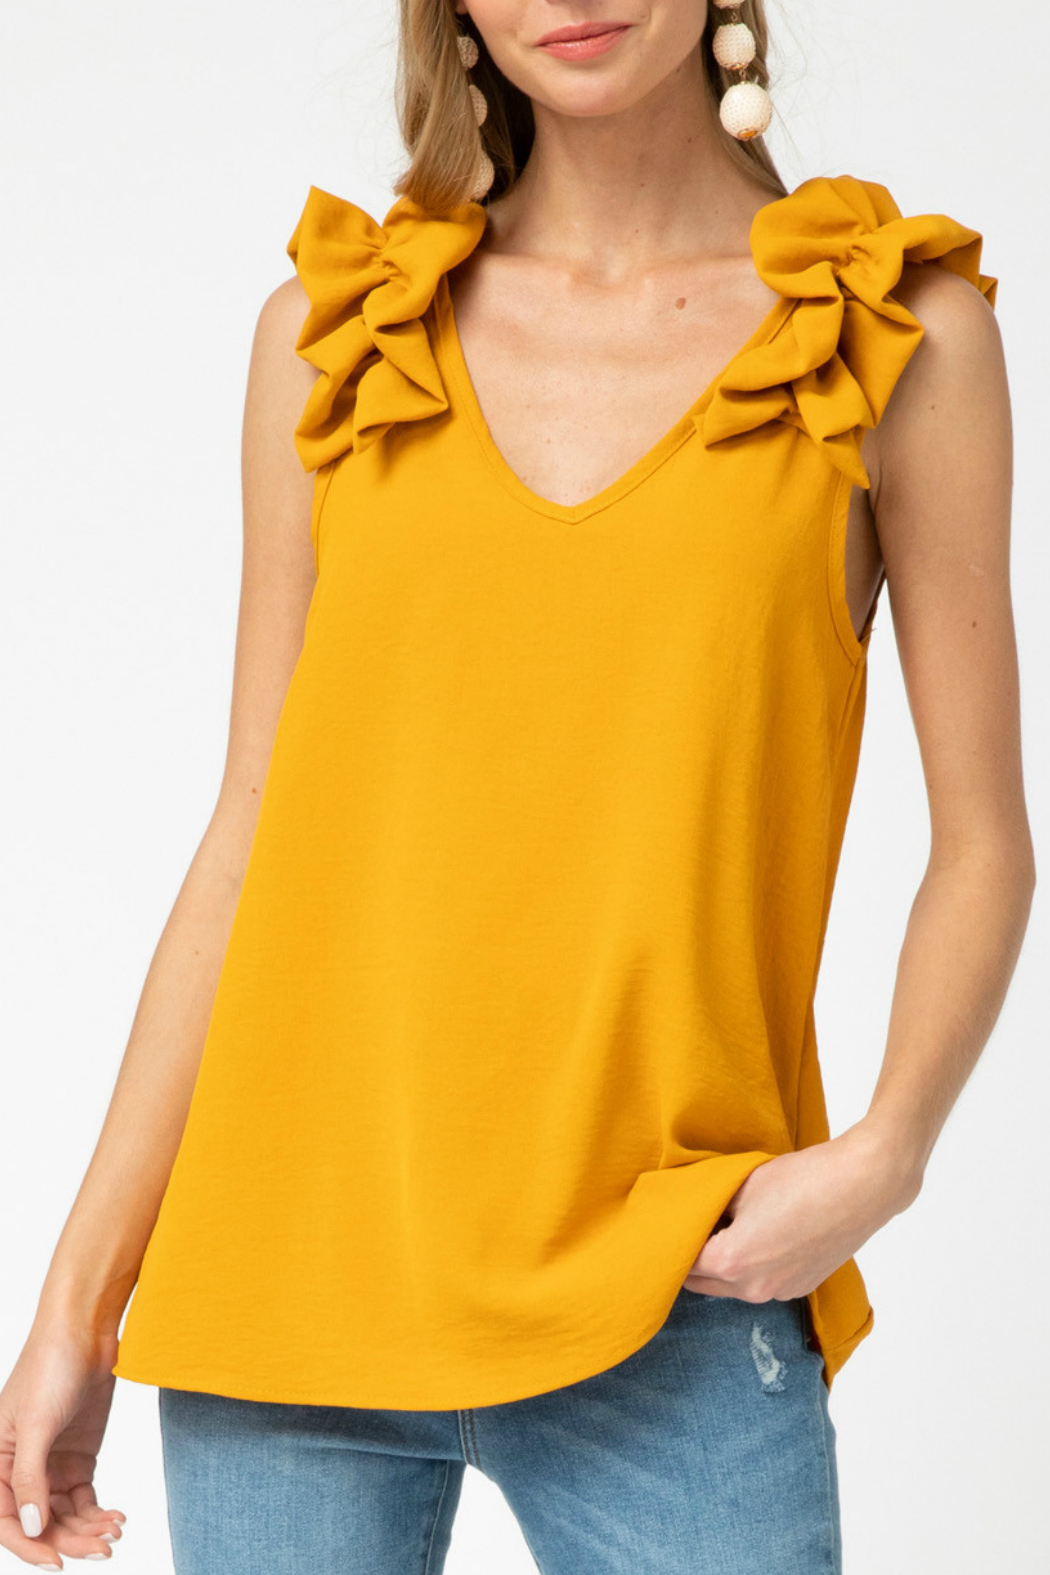 entro  v-neck top featuring ruffle detail - Main Image